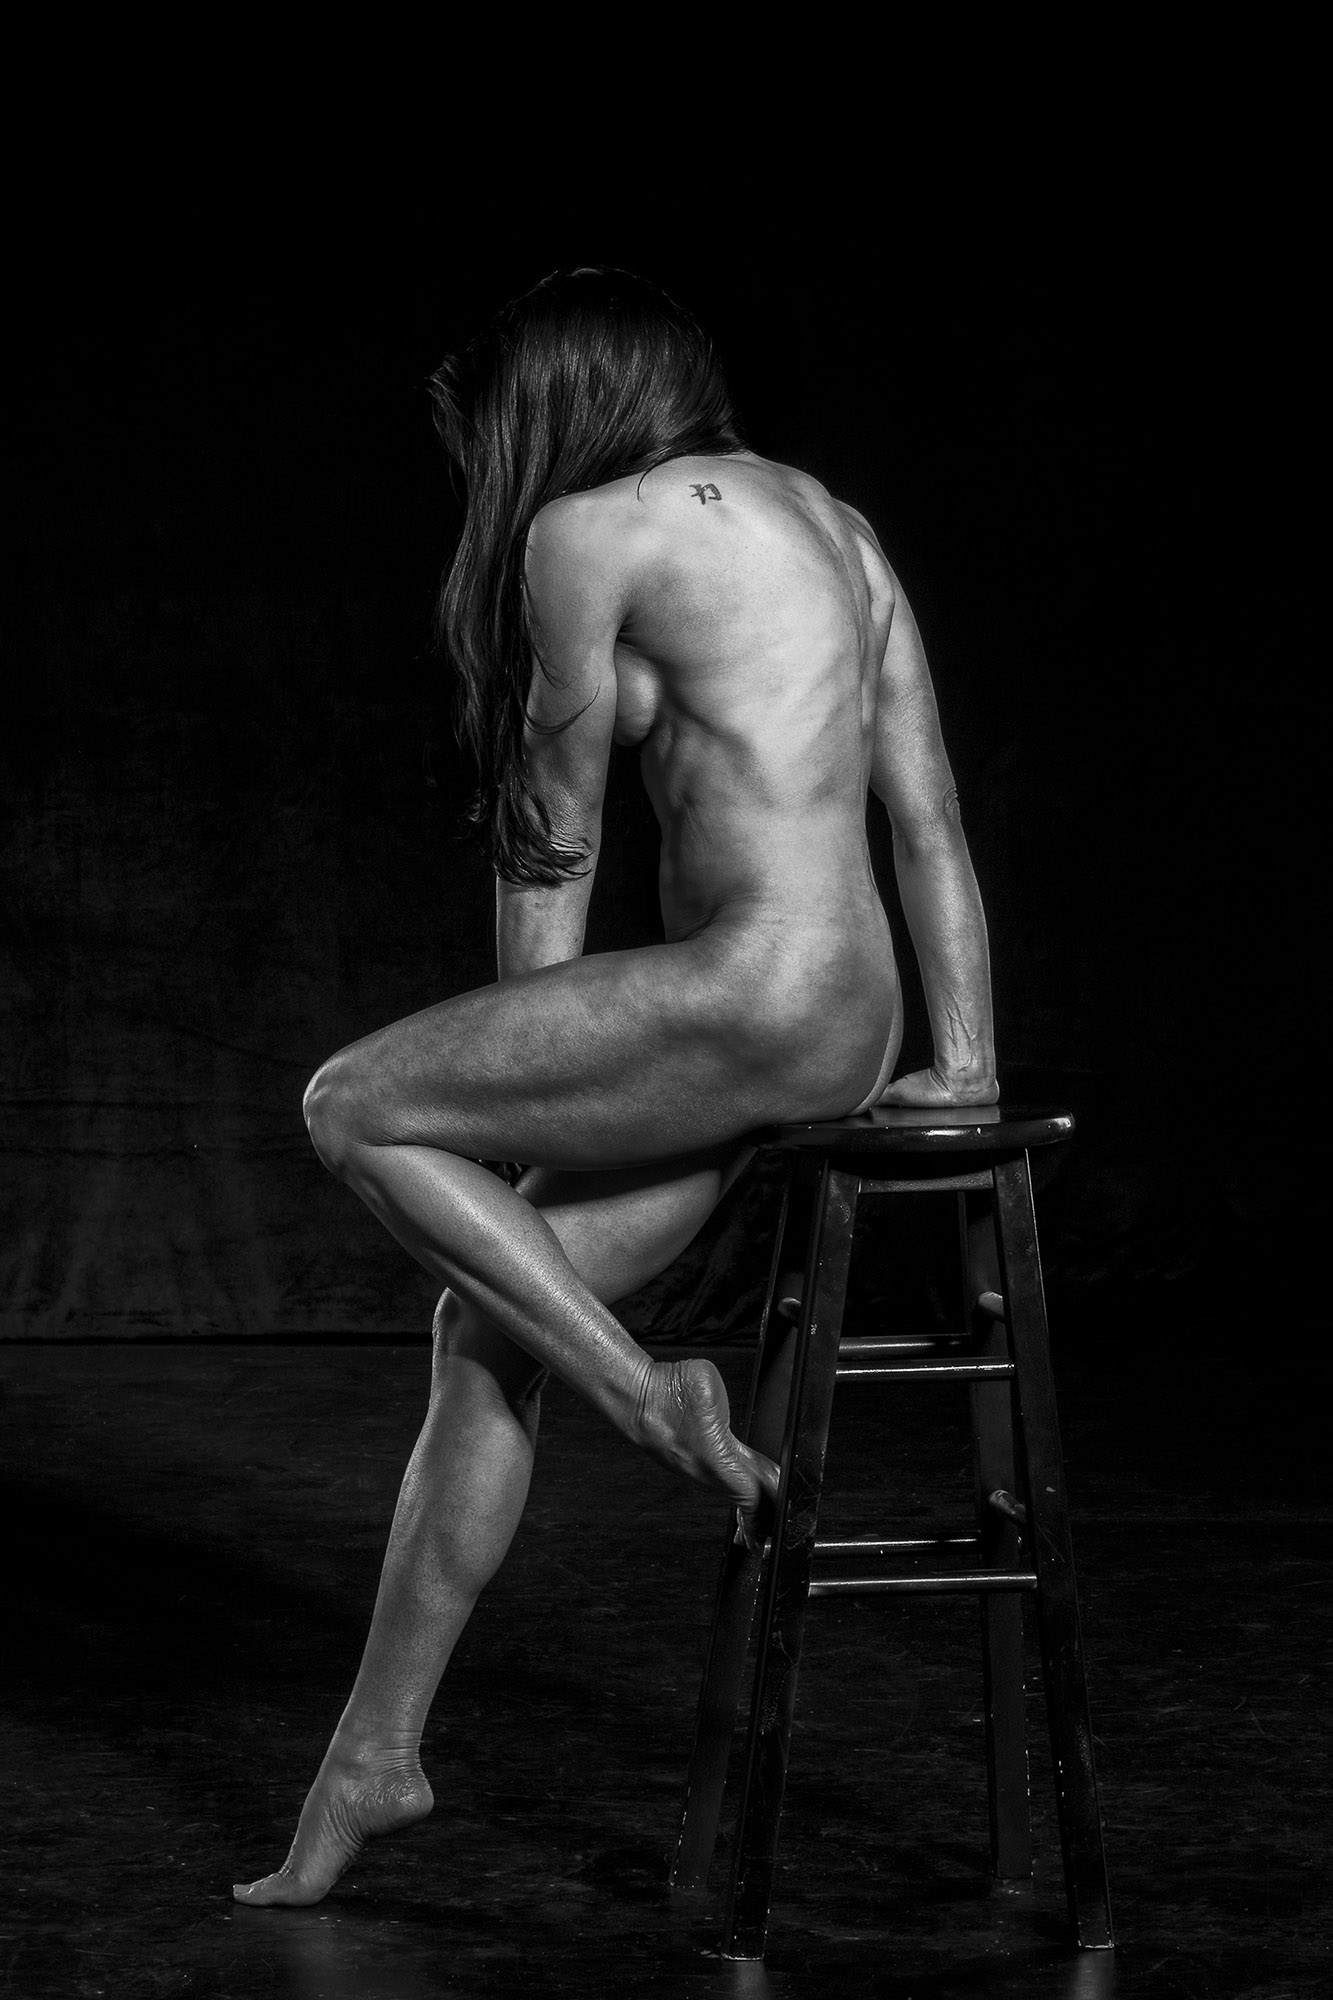 female-athlete-on-stool.jpg